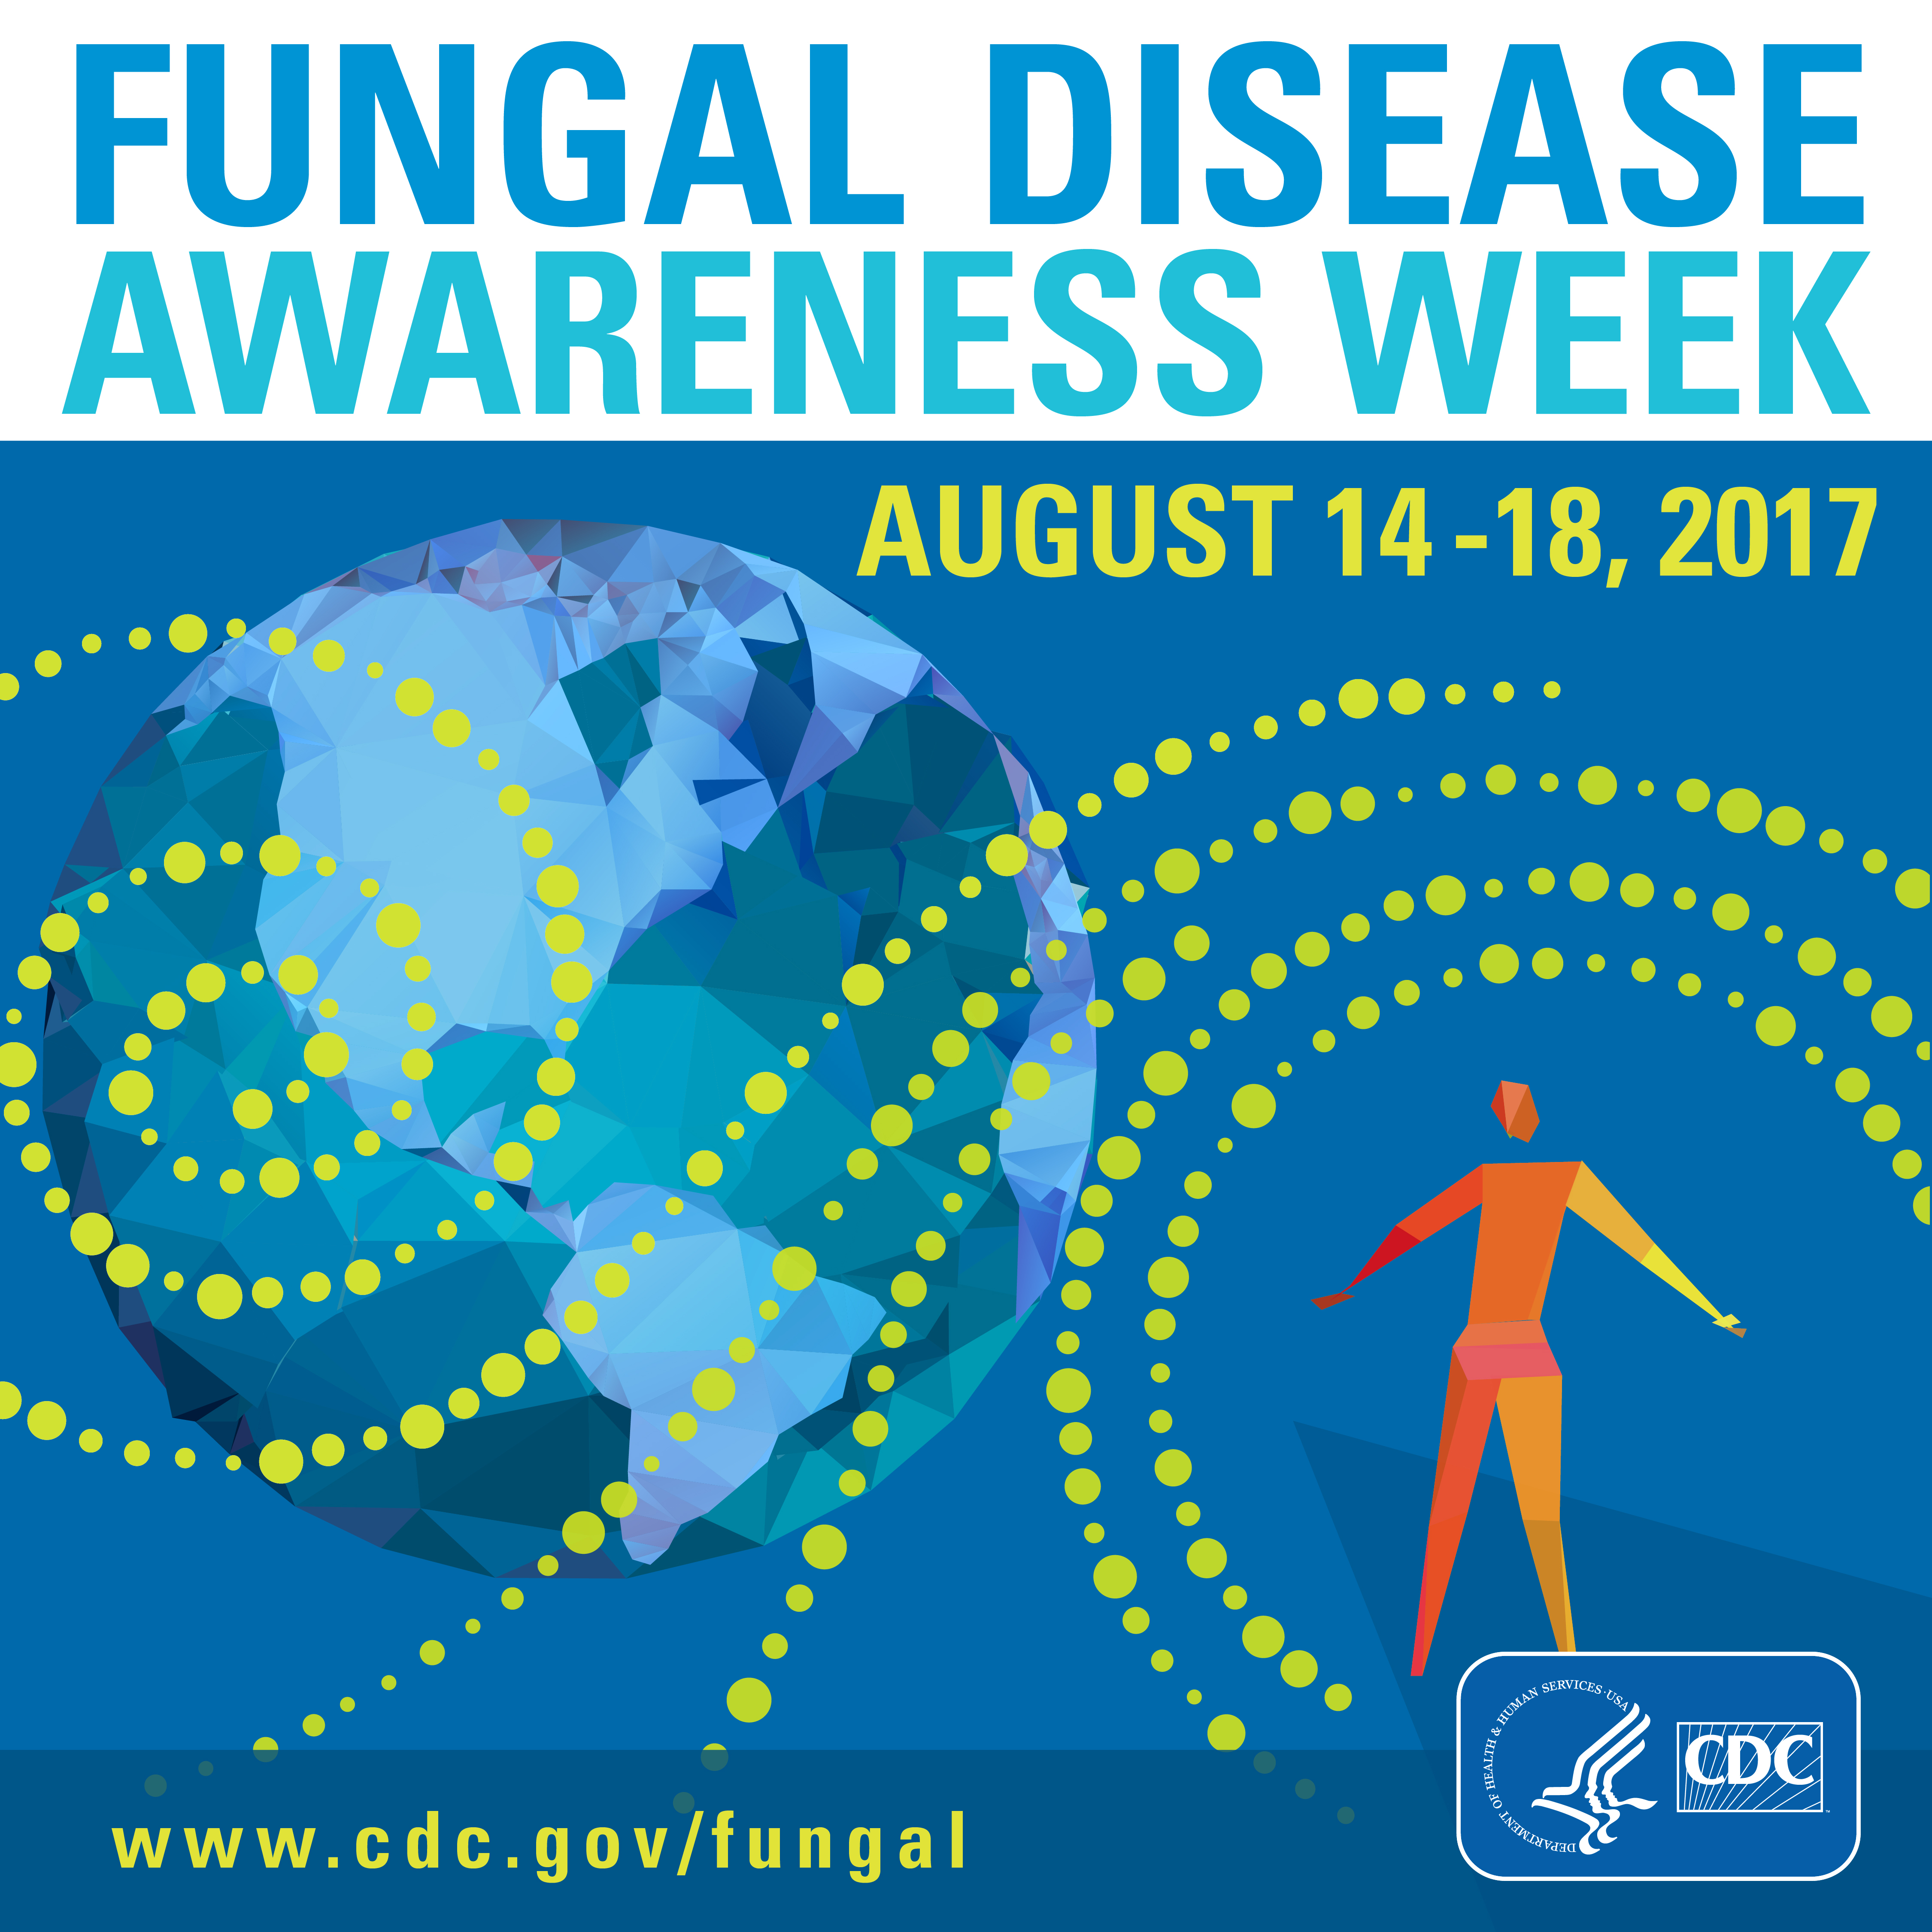 Fungal Disease Awareness Week August 14-18, 2017